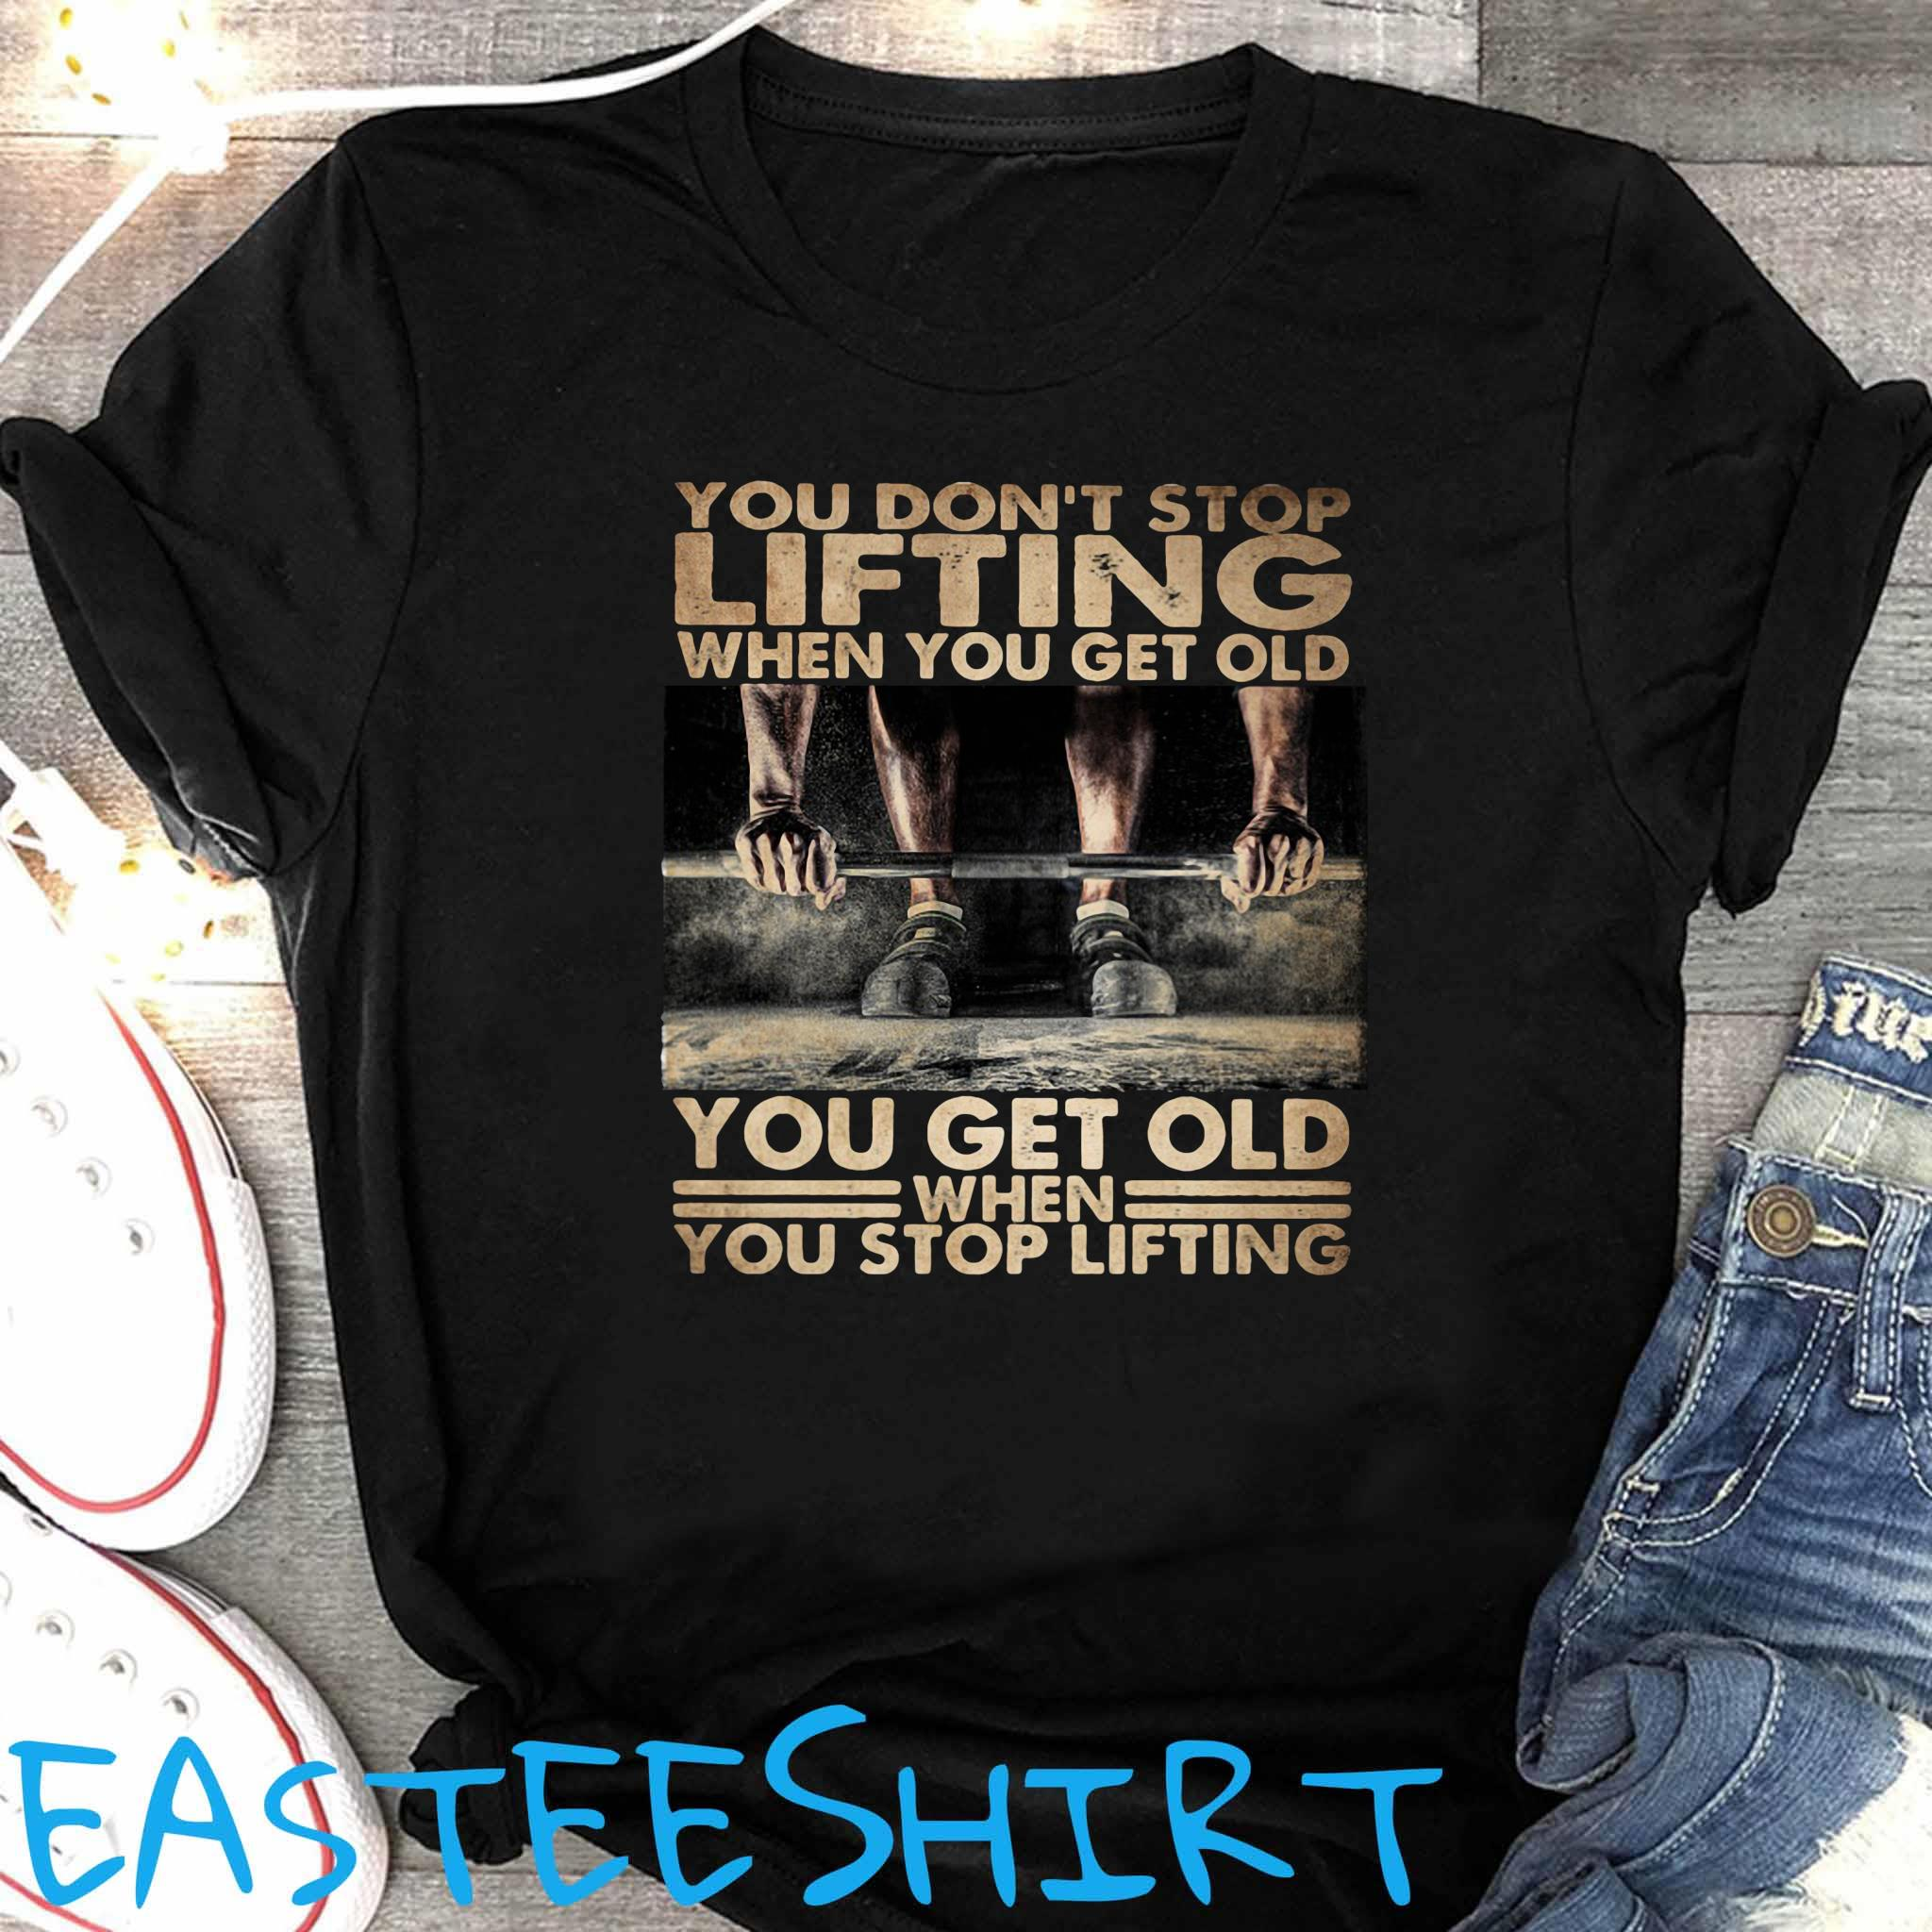 You Don't Stop Lifting When You Get Old You Get Old When You Stop Lifting Shirt Women's Shirt